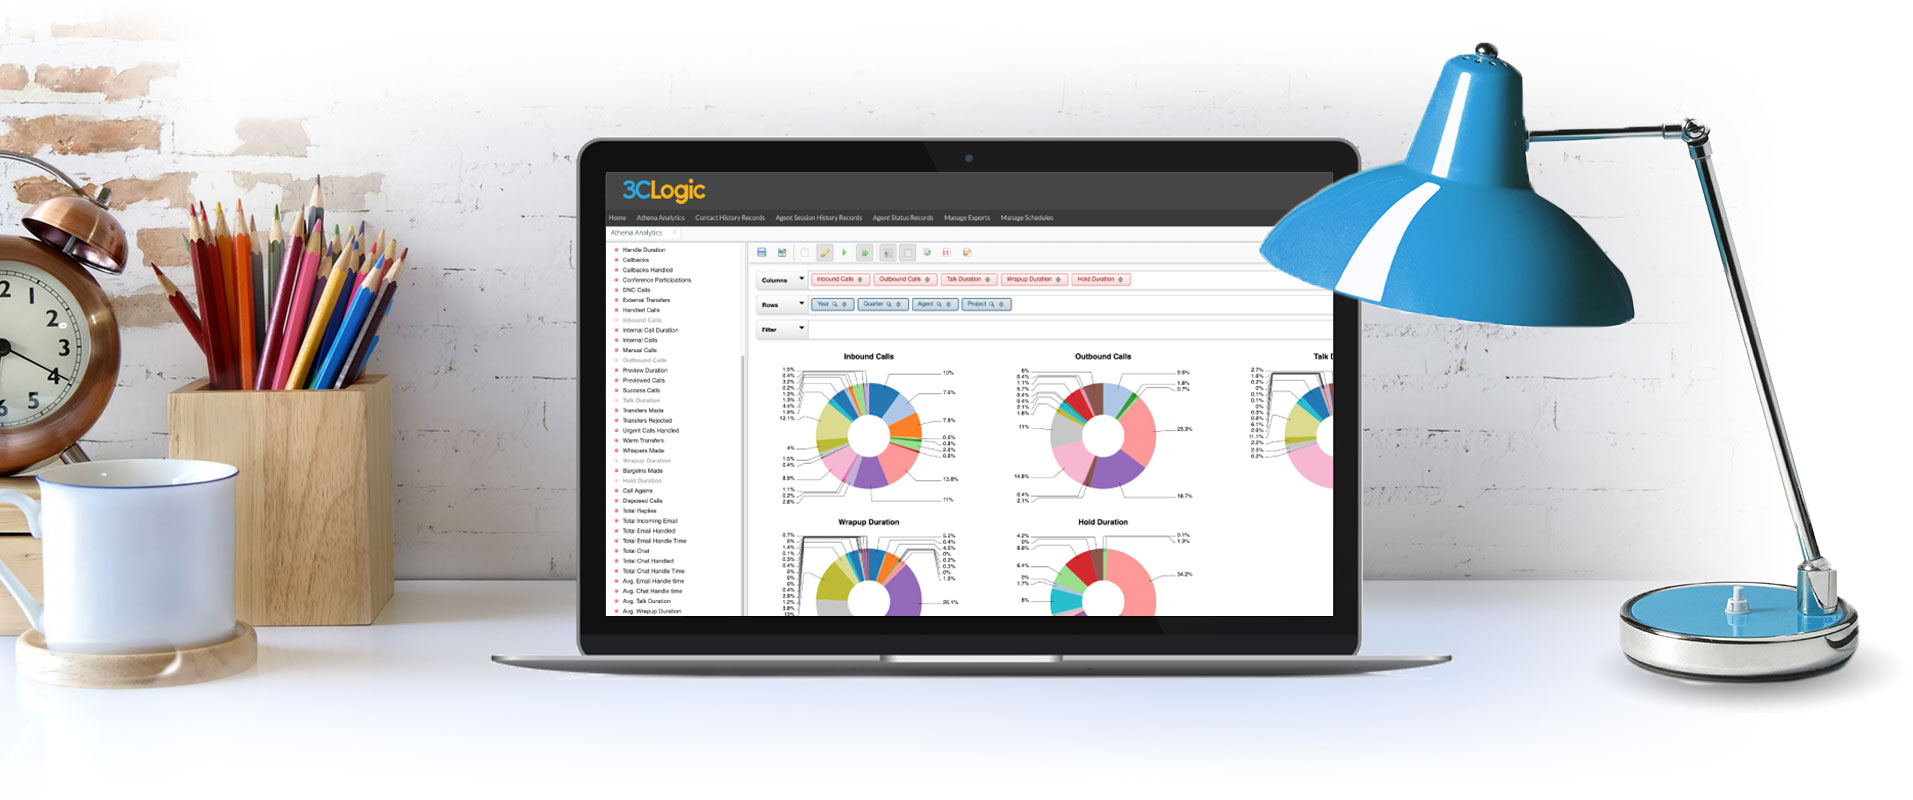 Laptop with screenshot of 3CLogic's reporting and analytics